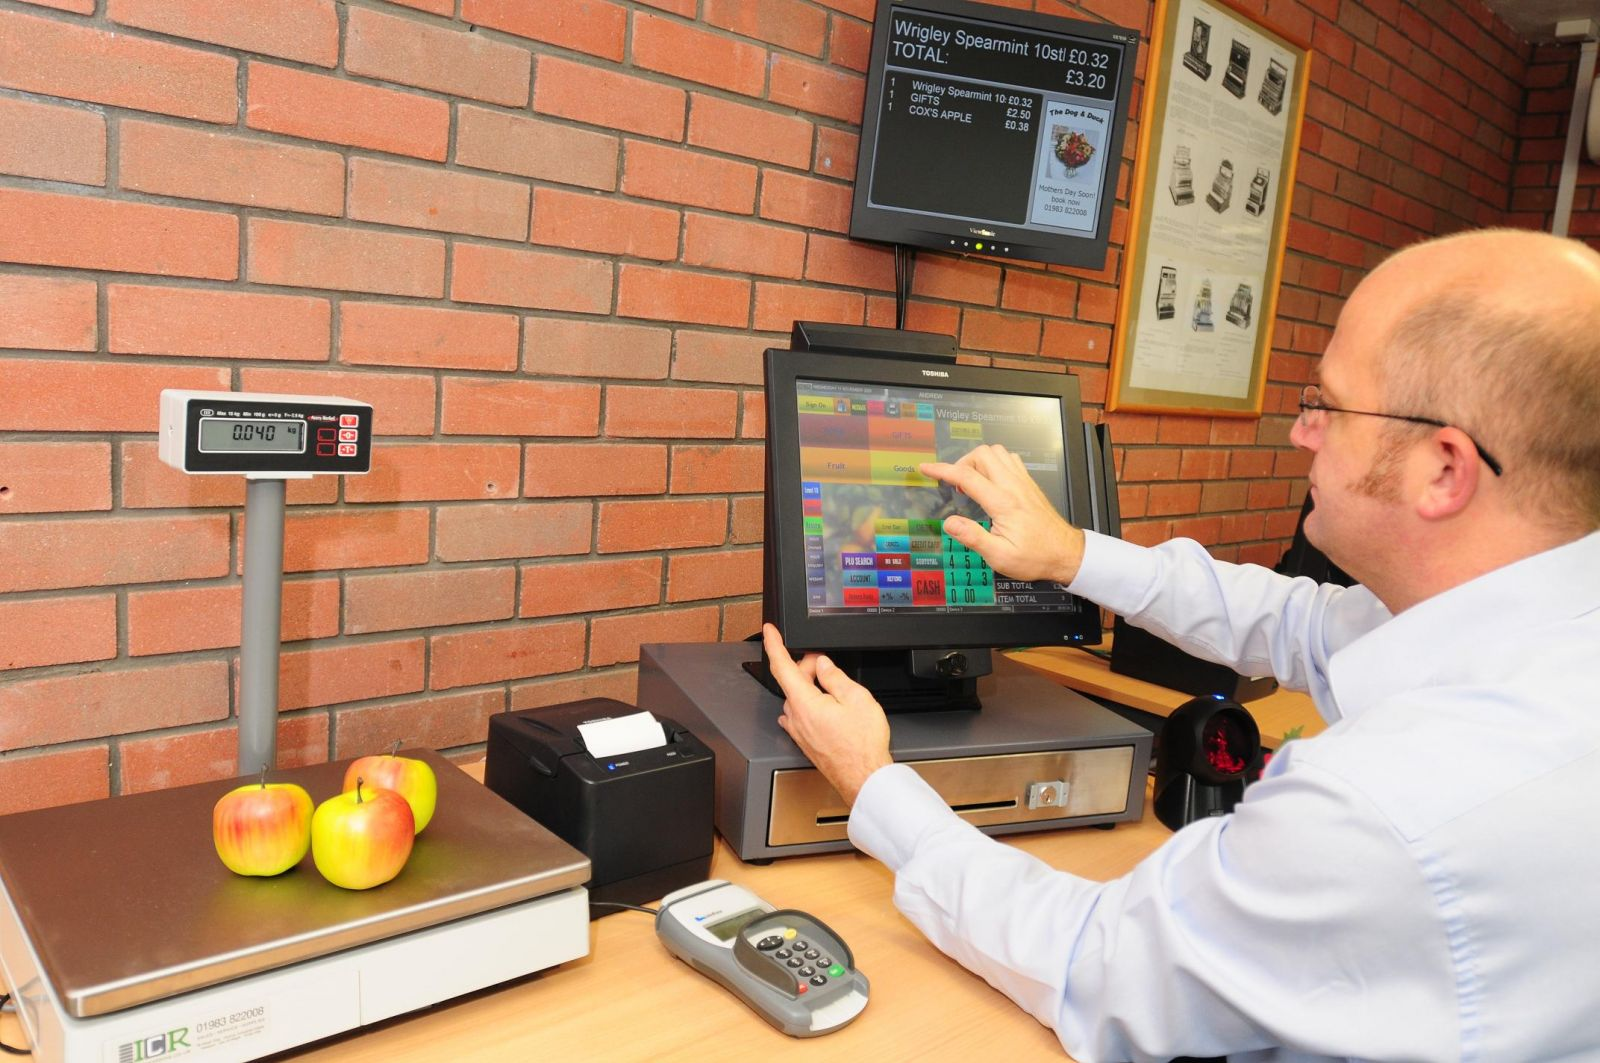 Retail touch screen terminal linked to EFT and a Scale